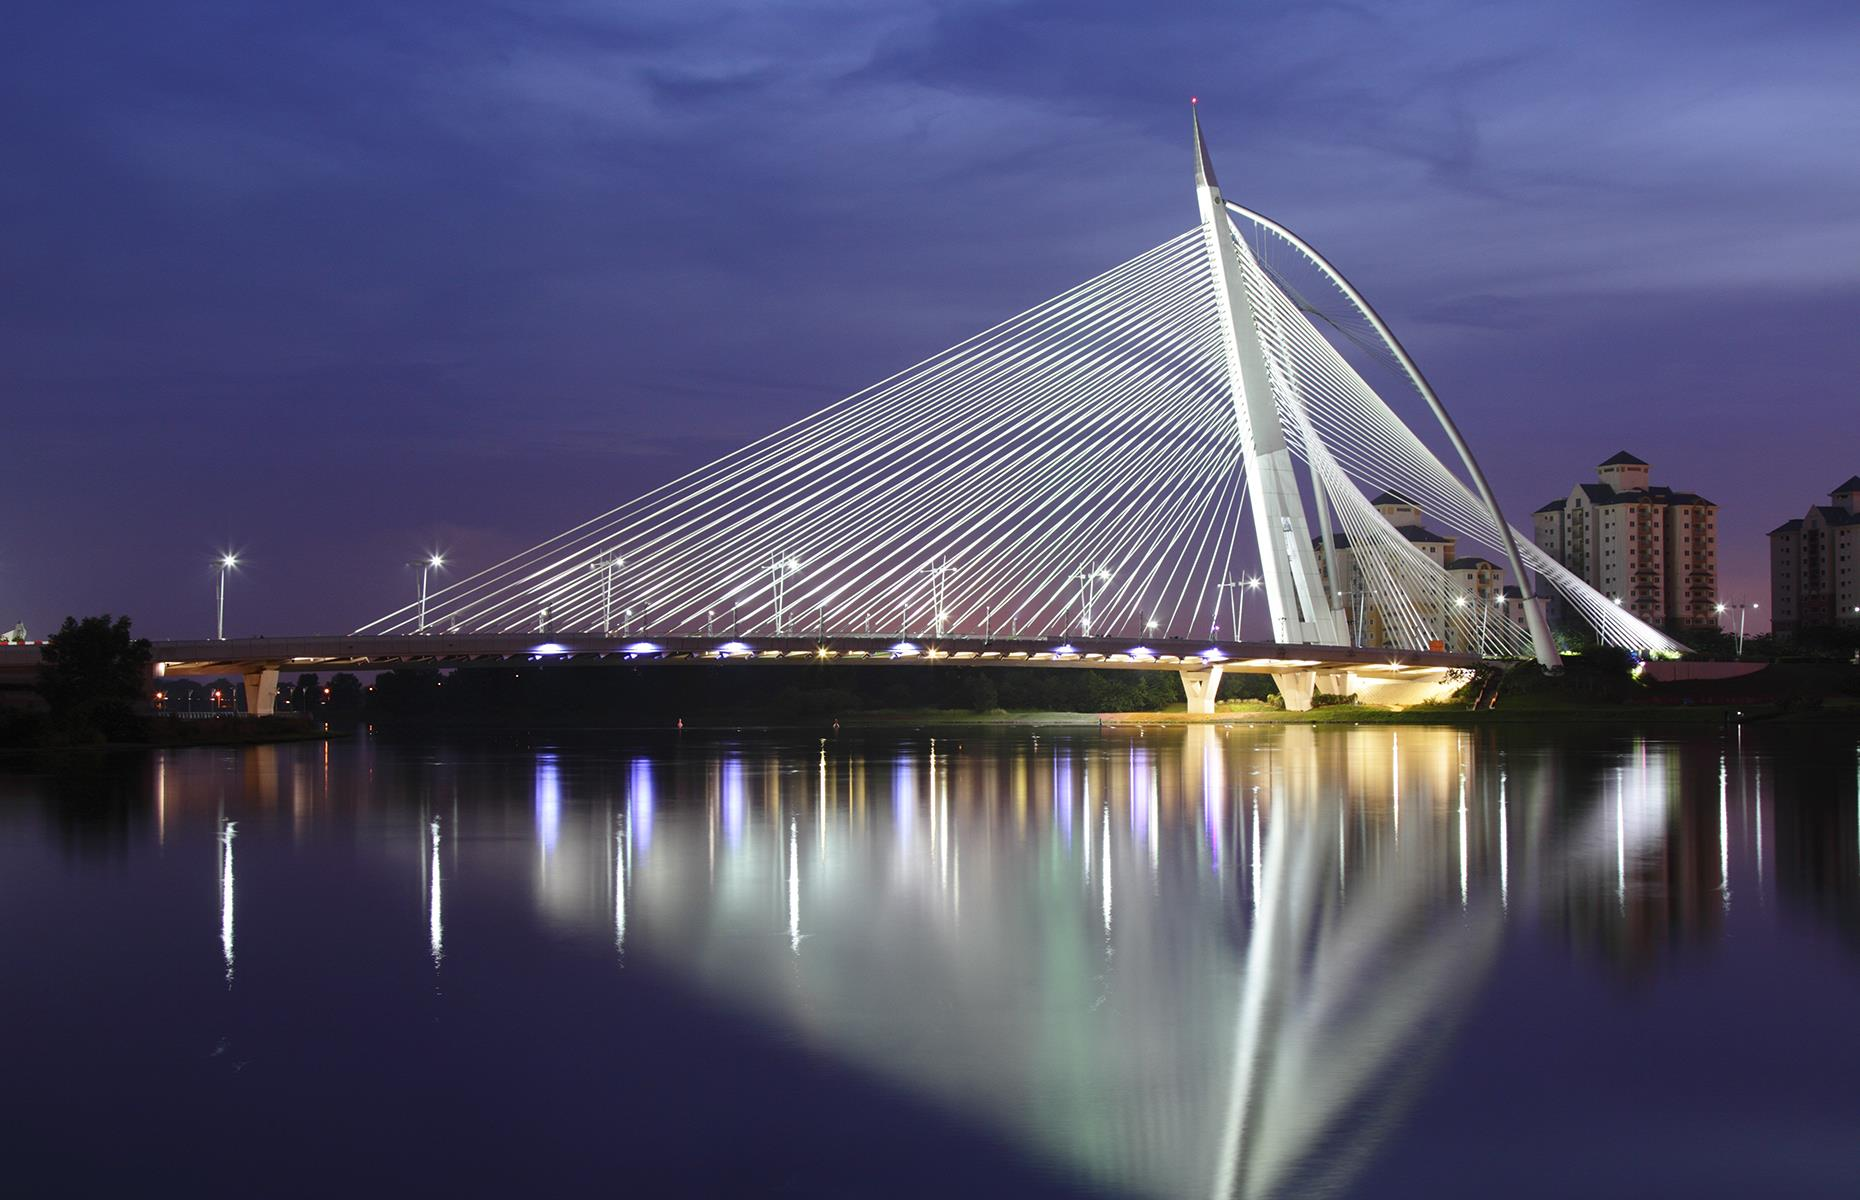 Slide 26 of 31: Malaysia's futuristic Seri Wawasan Bridge, built to resemble a sailing ship, certainly makes a statement. The cable-stayed structure, finished in 2003, rises above man-made Putrajaya Lake and looks especially spectacular when lit up at night.